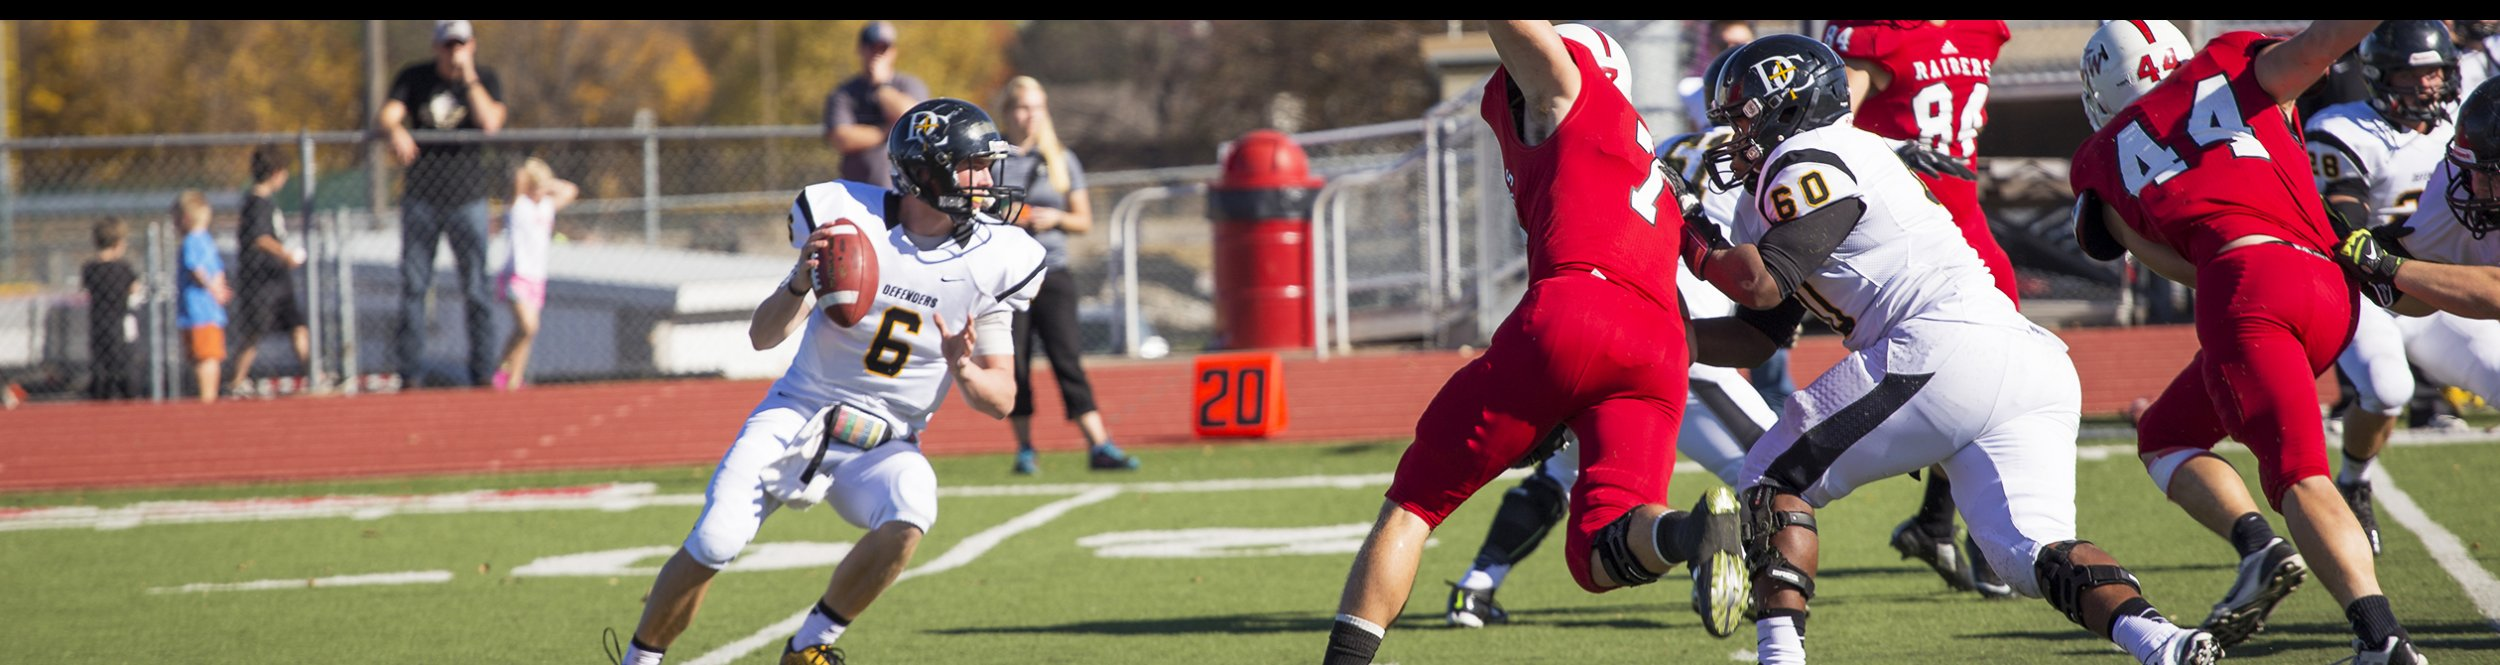 A Dordt football player prepares to throw the ball.